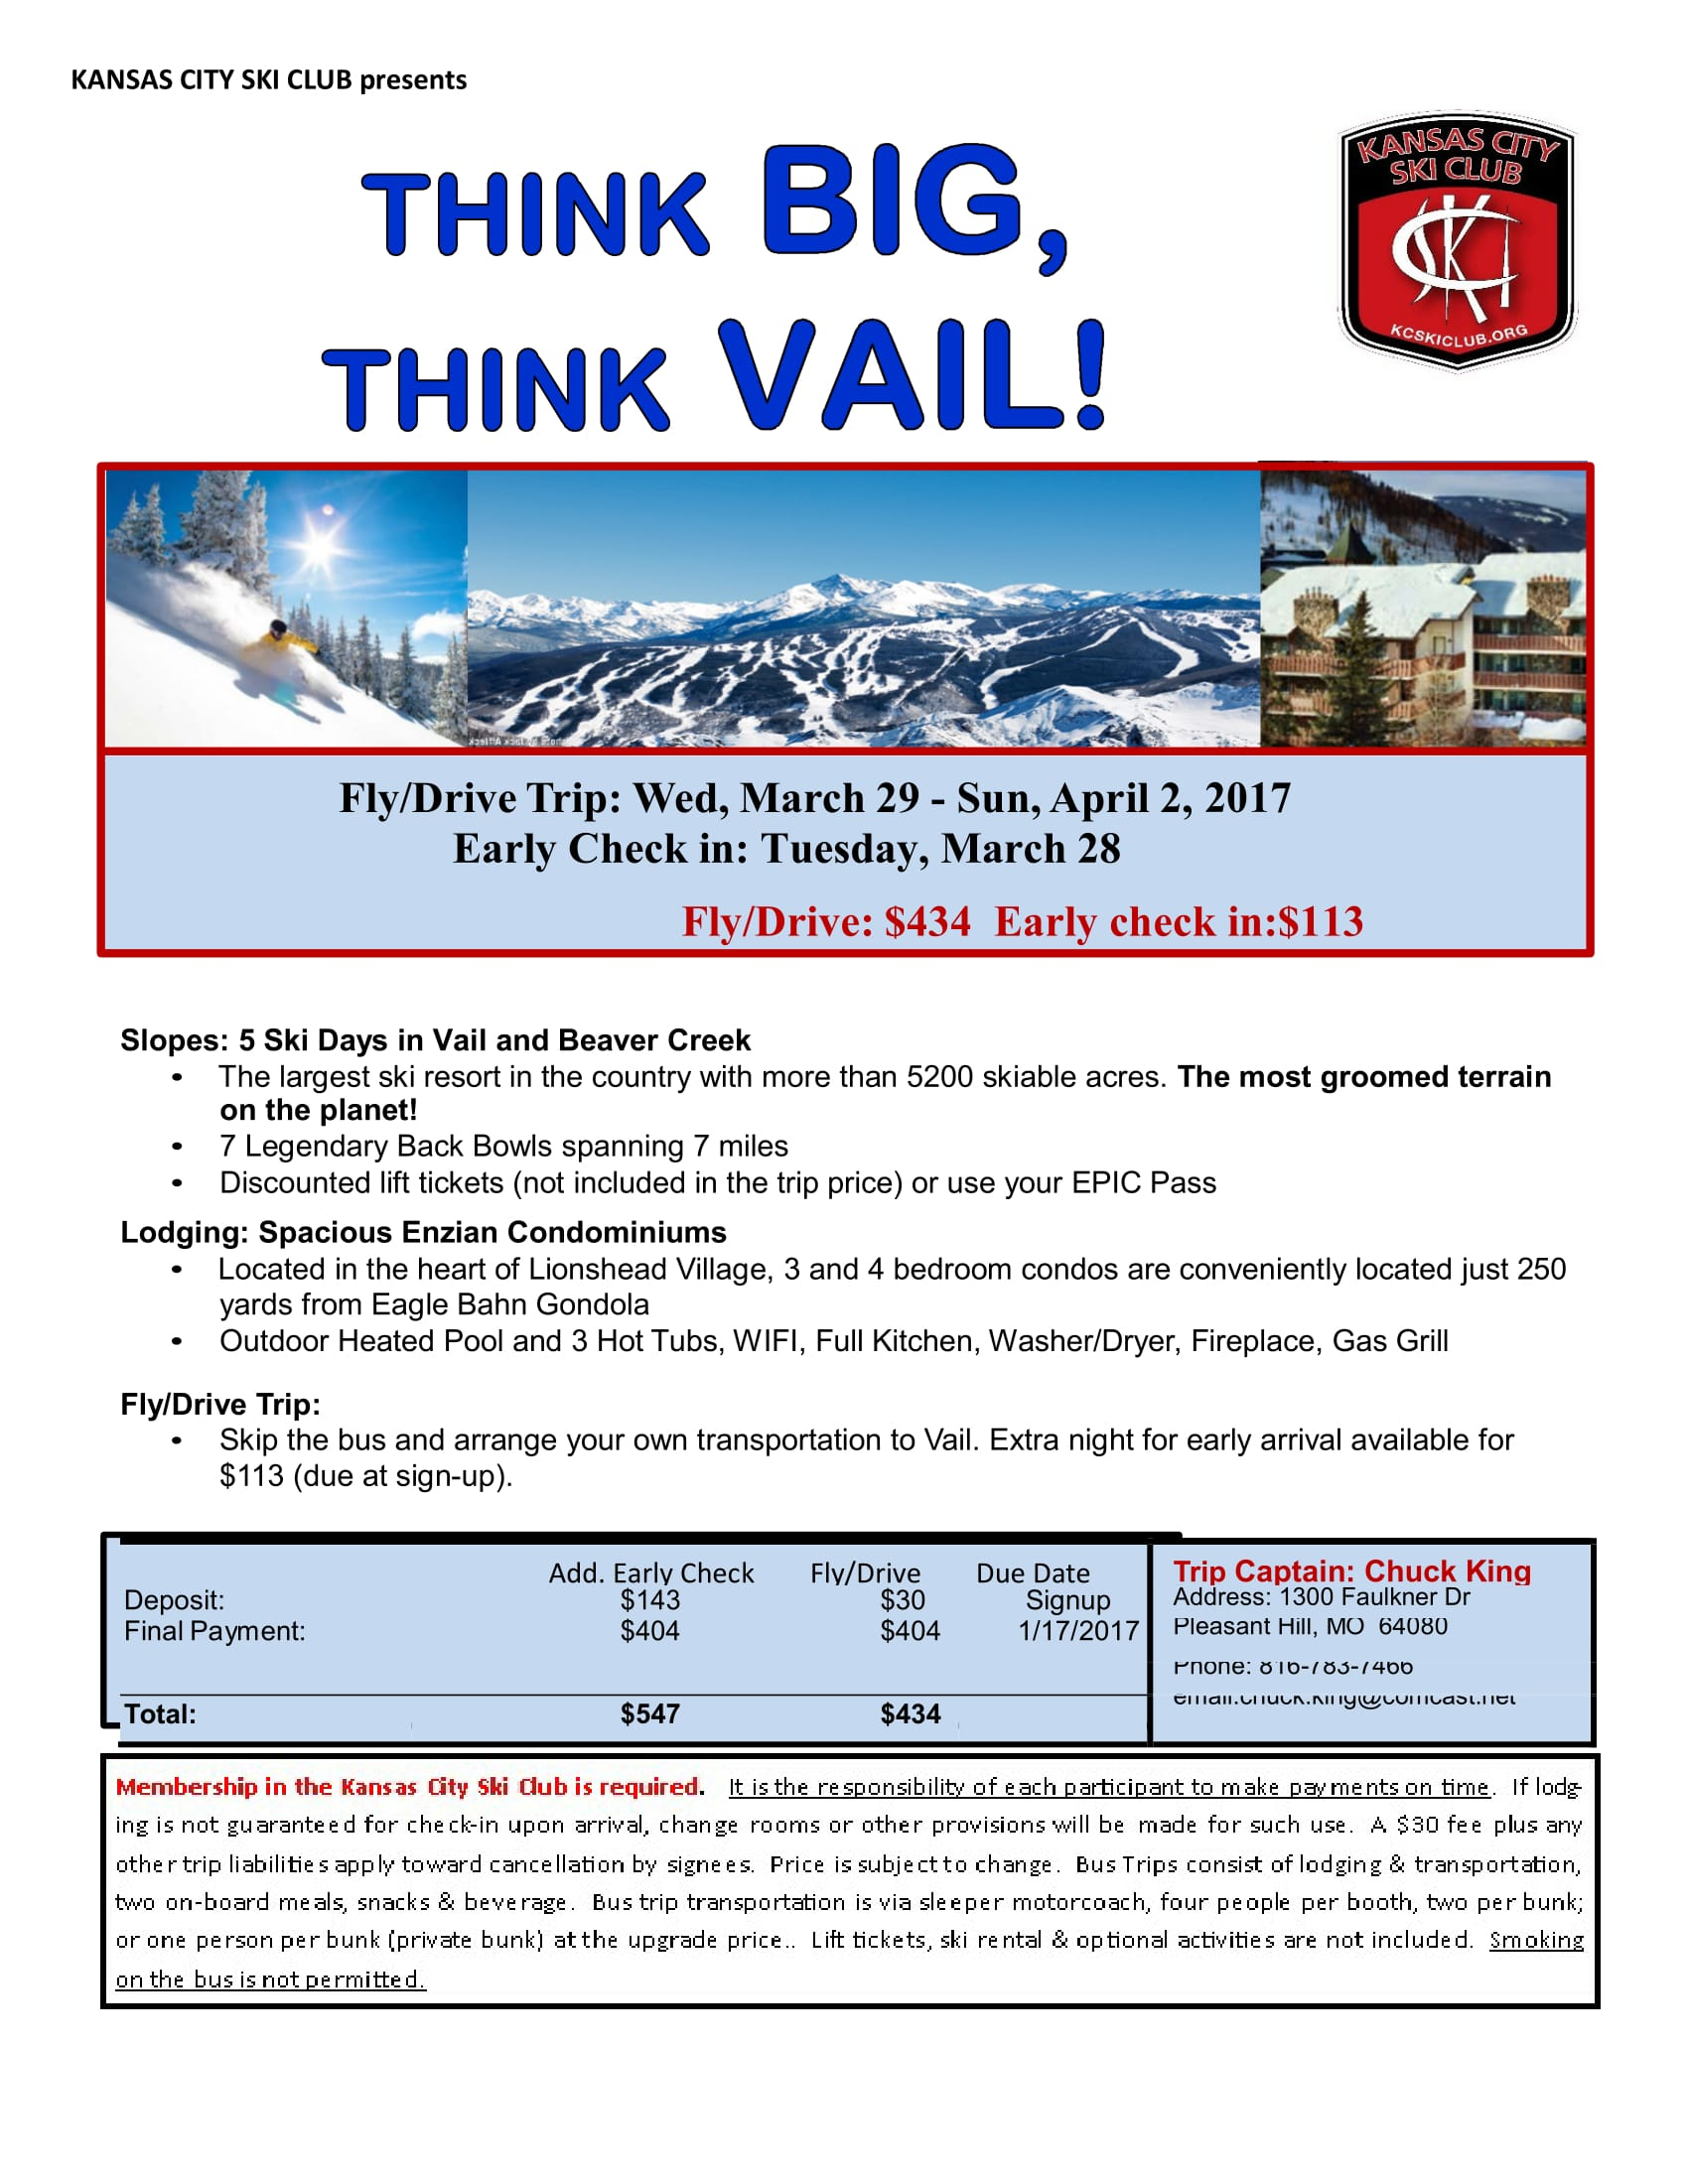 vail updated